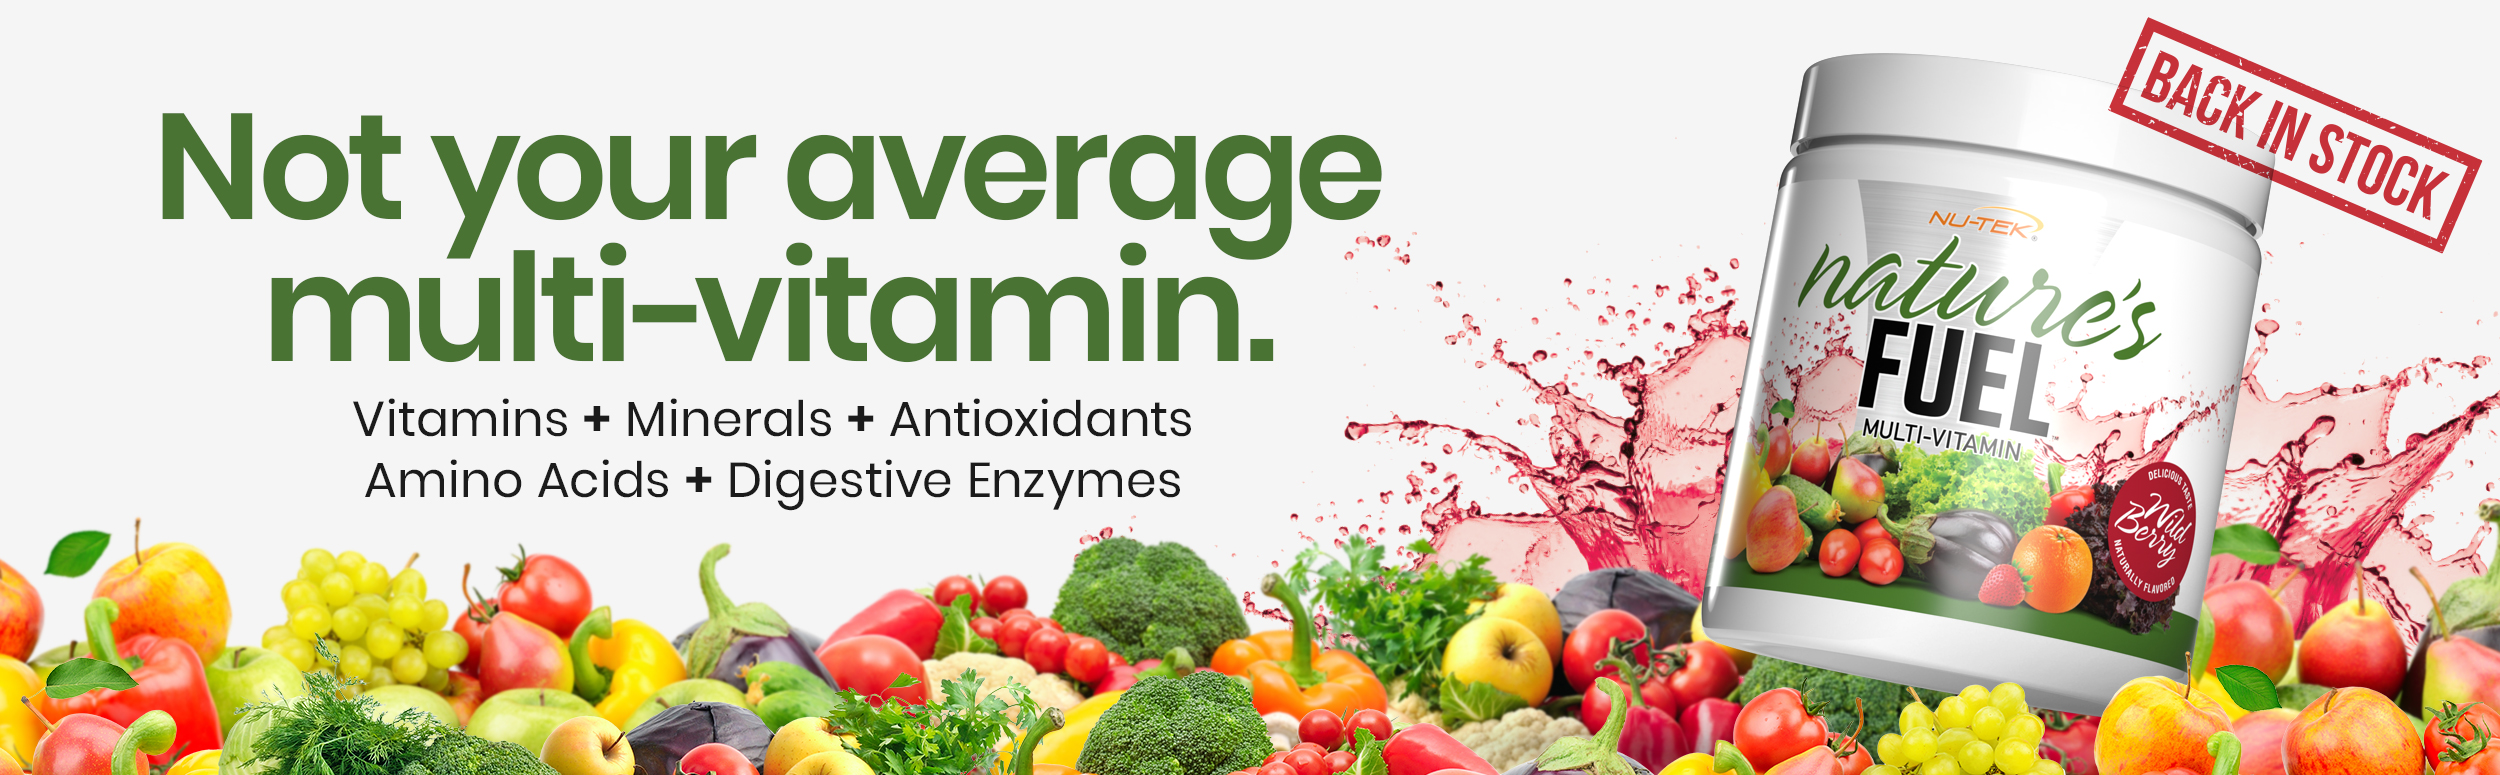 Nu-Tek Nature's Fuel - Not your average multi-vitamin - Click to Learn more